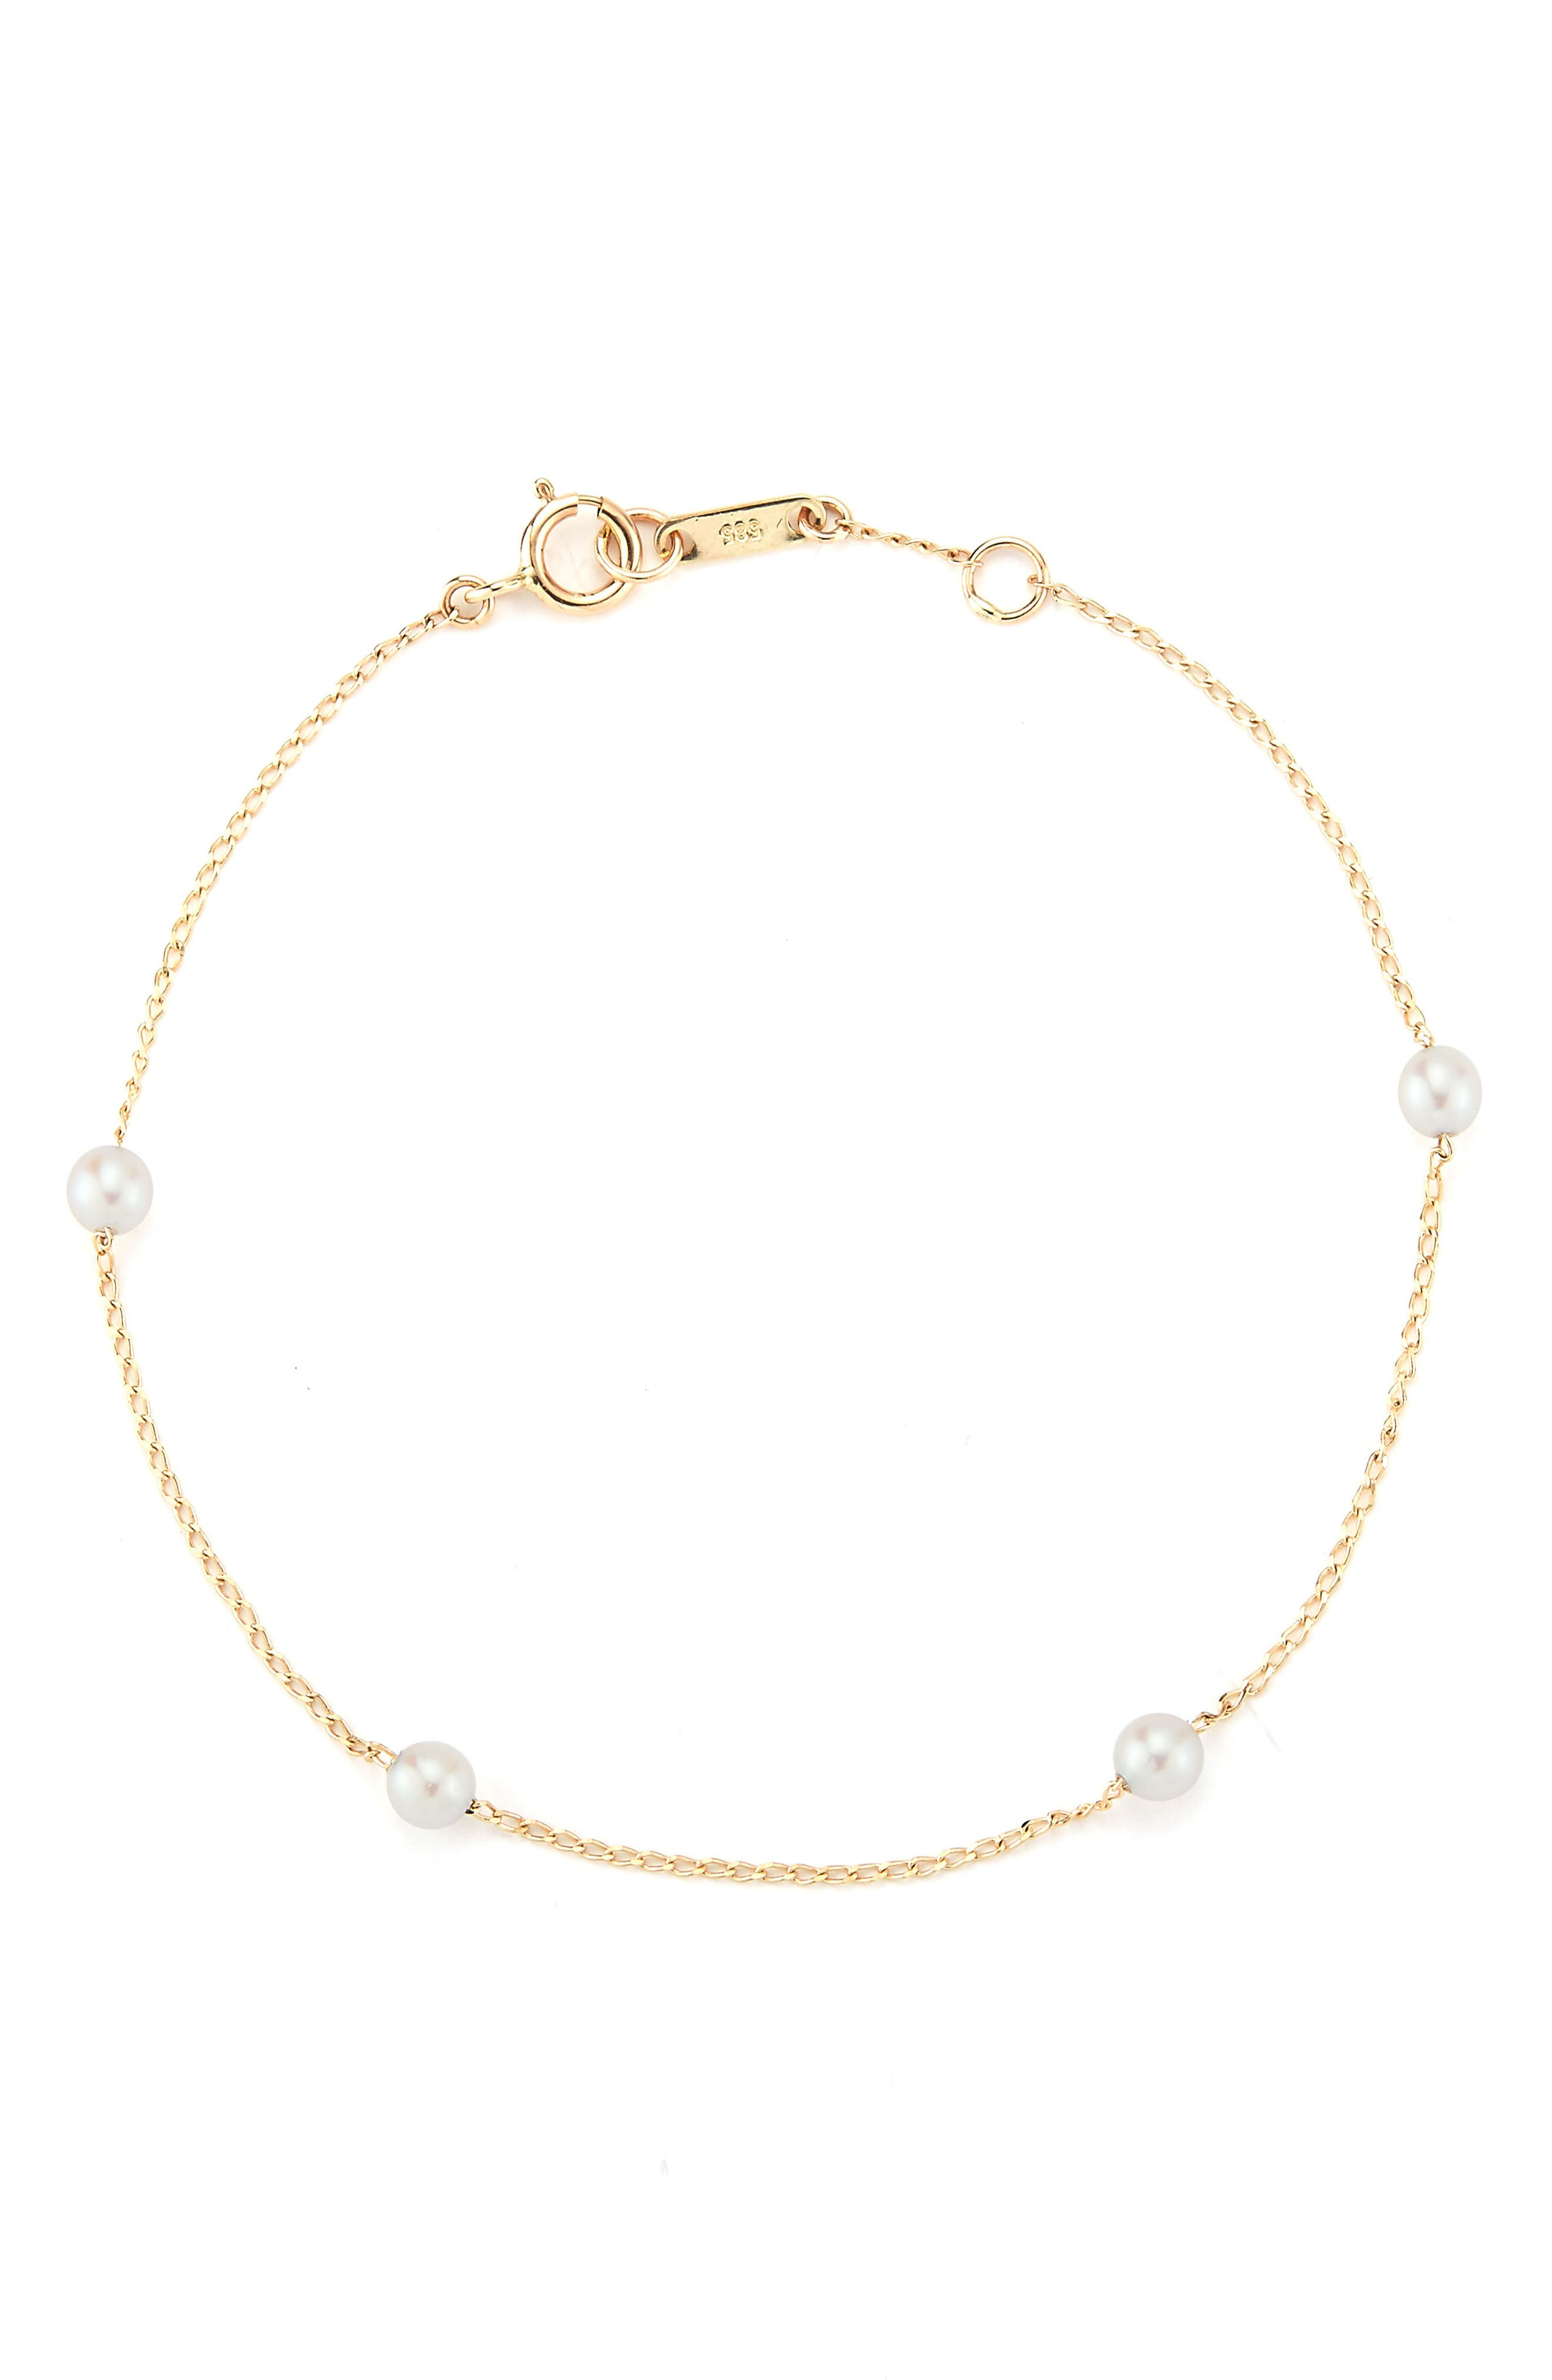 Four-Pearl Station Bracelet,                         Main,                         color, Yellow Gold/ Pearl